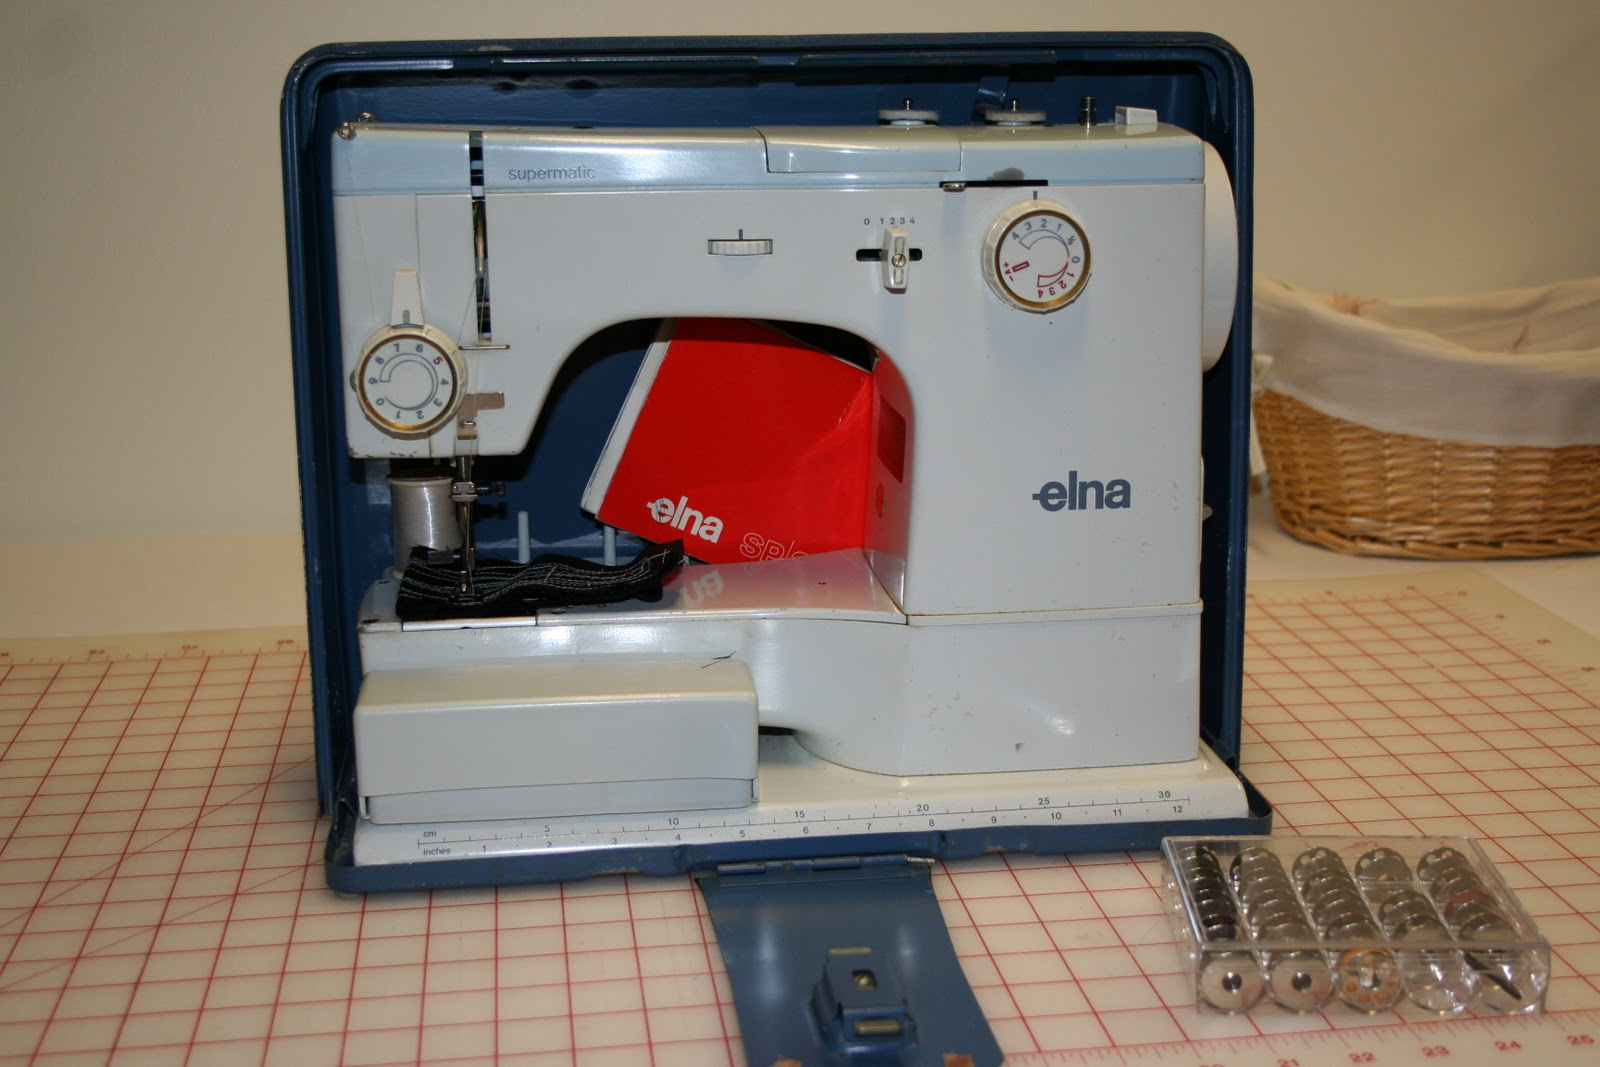 Elna Sewing Machine Parts Diagram Wiring For Two Way Switch One Light Tammy S Craft Emporium 1970s Supermatic Ella Not Sure Why But And Bernina Usually Provide Manuals The First Book Is Specific To Basic Operation Of